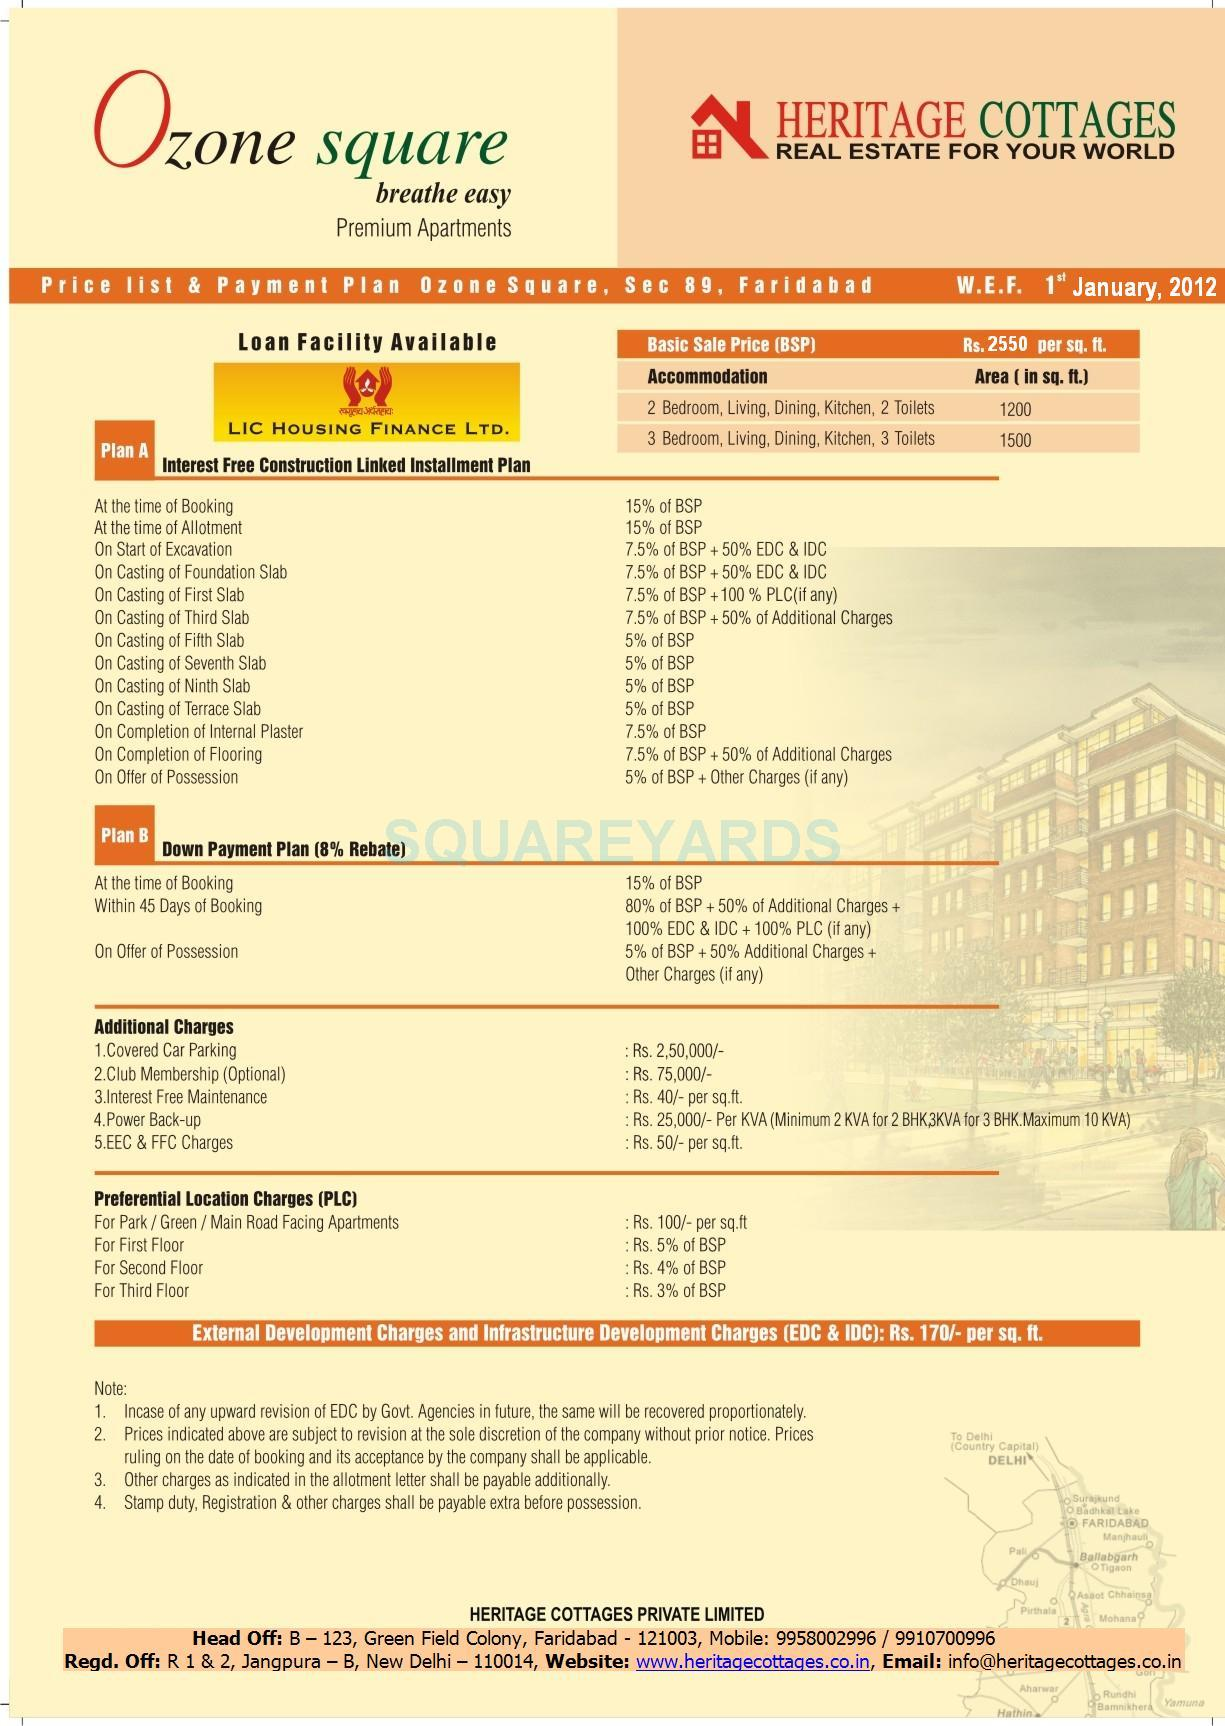 payment-plan-image-Picture-heritage-ozone-square-2008146